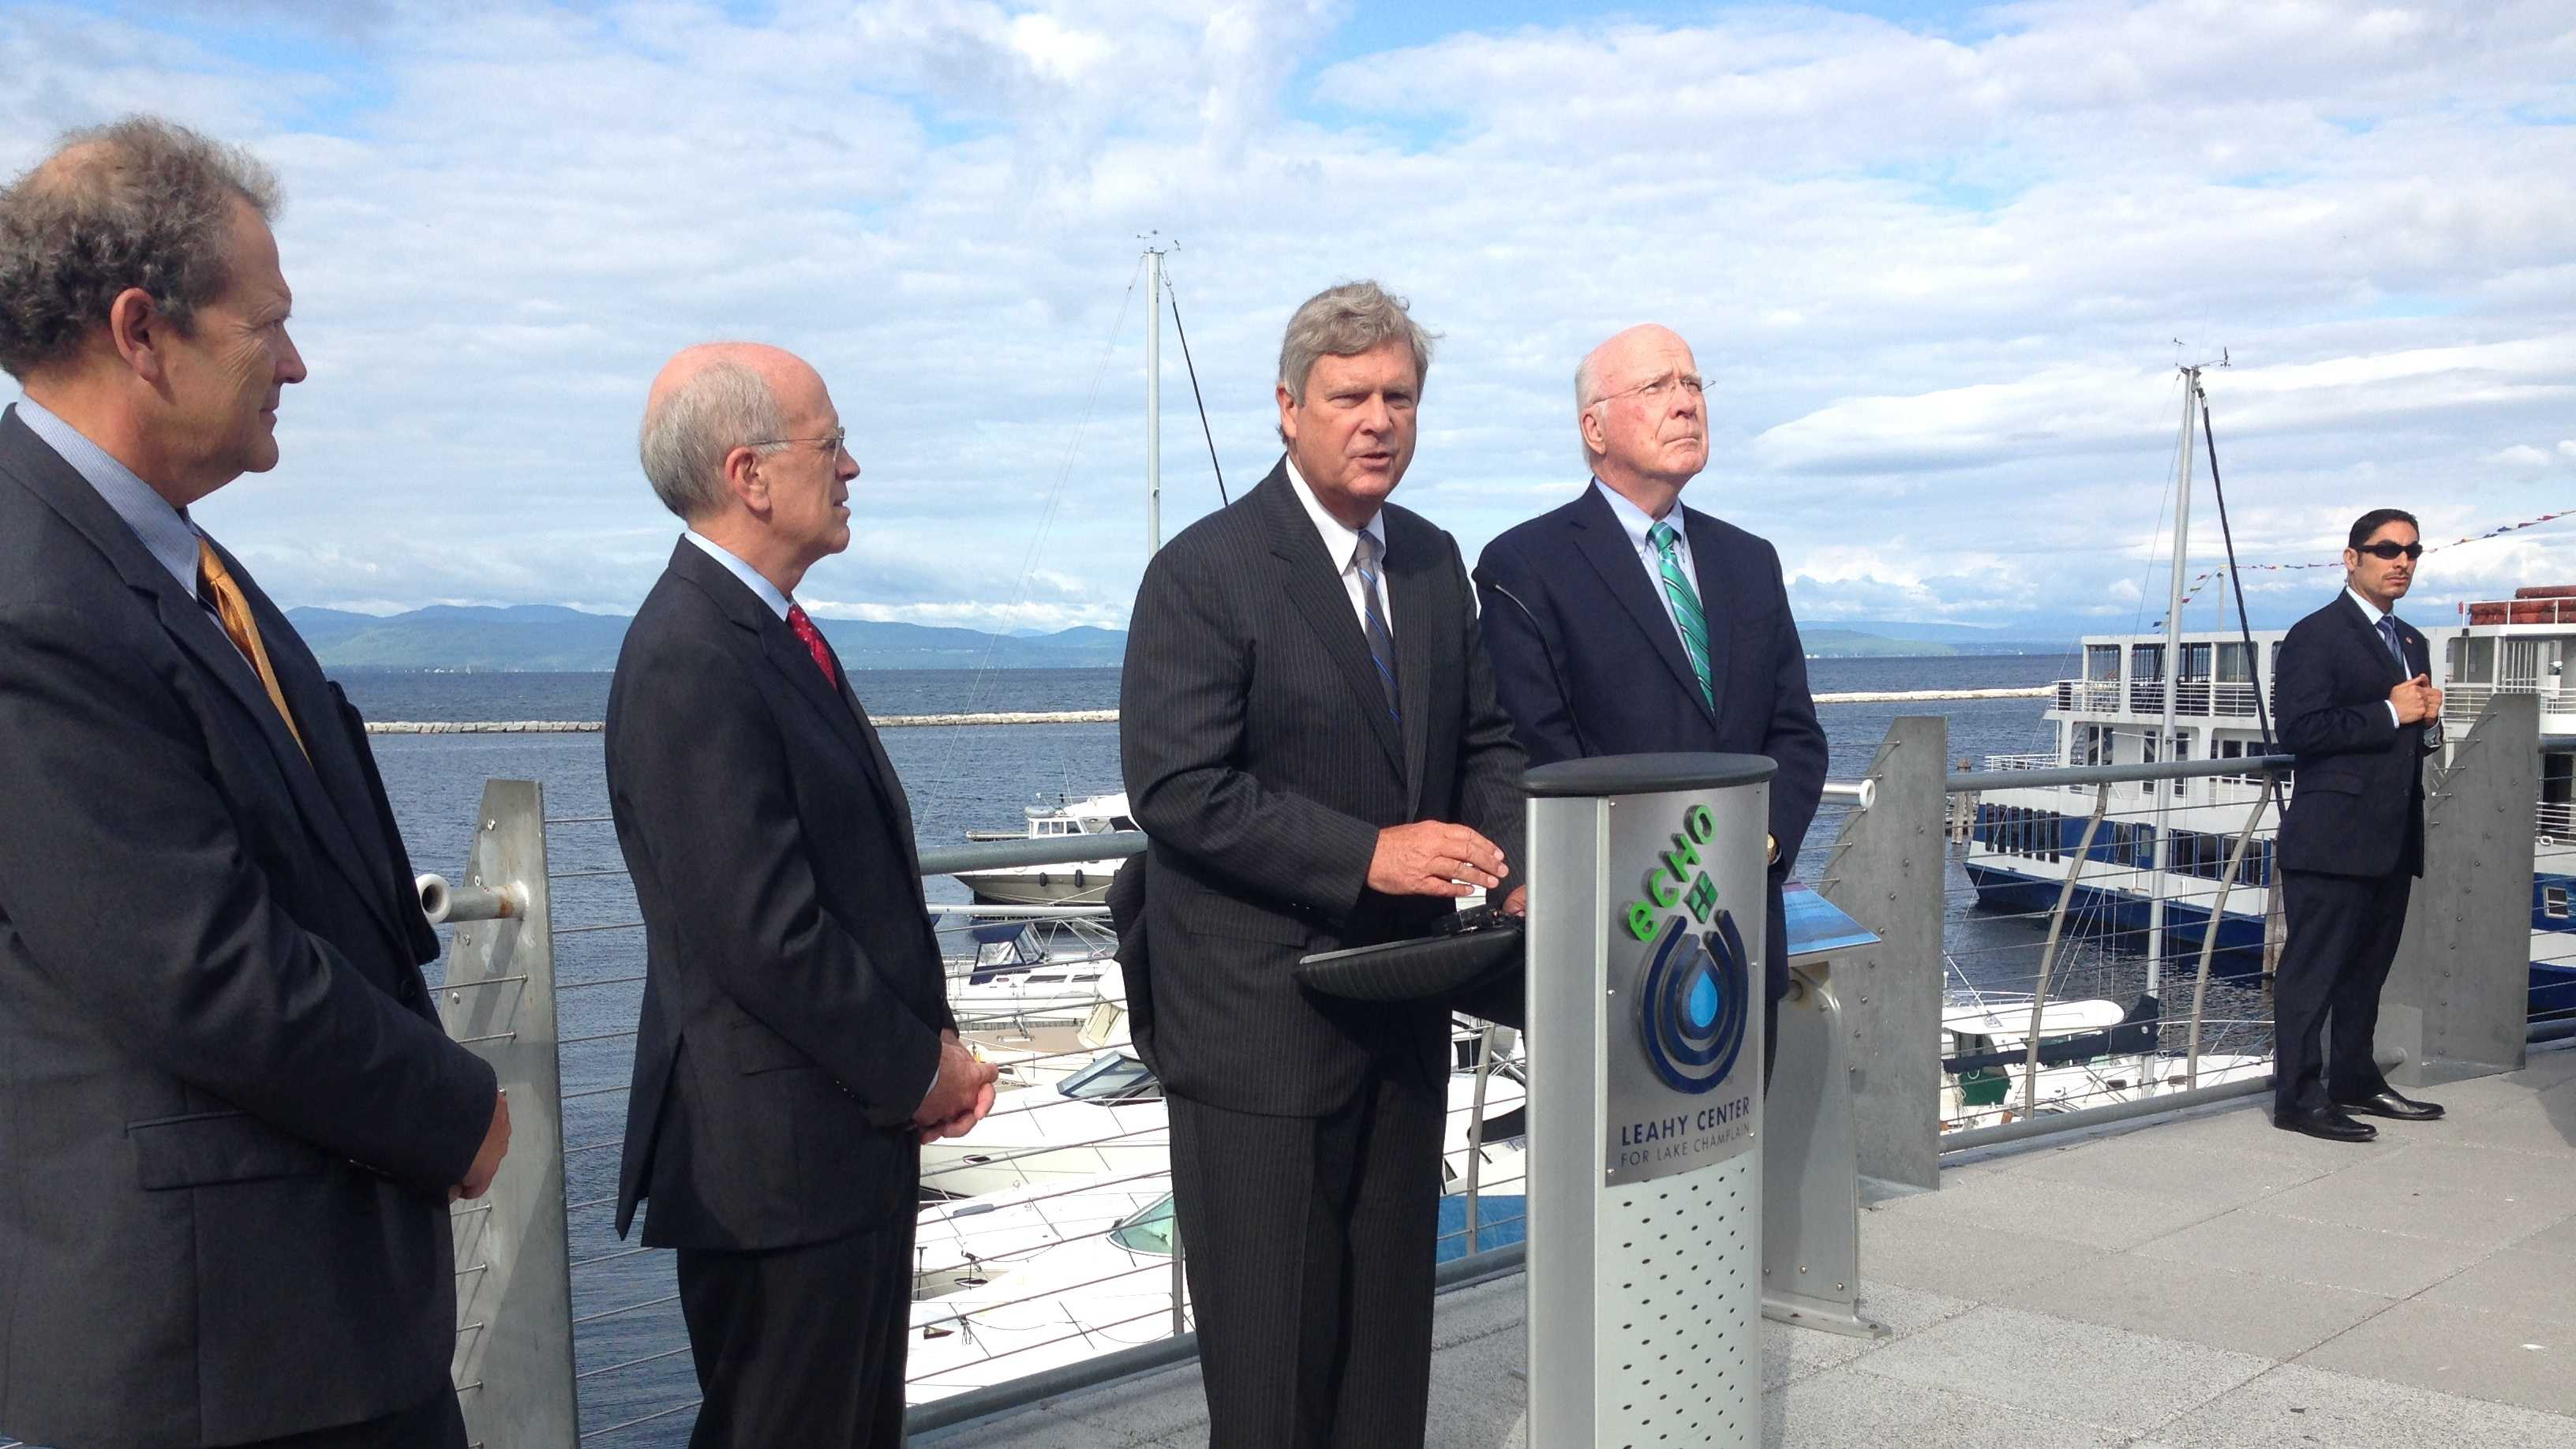 U.S. Agriculture Secretary Tom Vilsack was in Burlington Thursday to announce funding for efforts to protect soil and water quality in the Lake Champlain Basin.